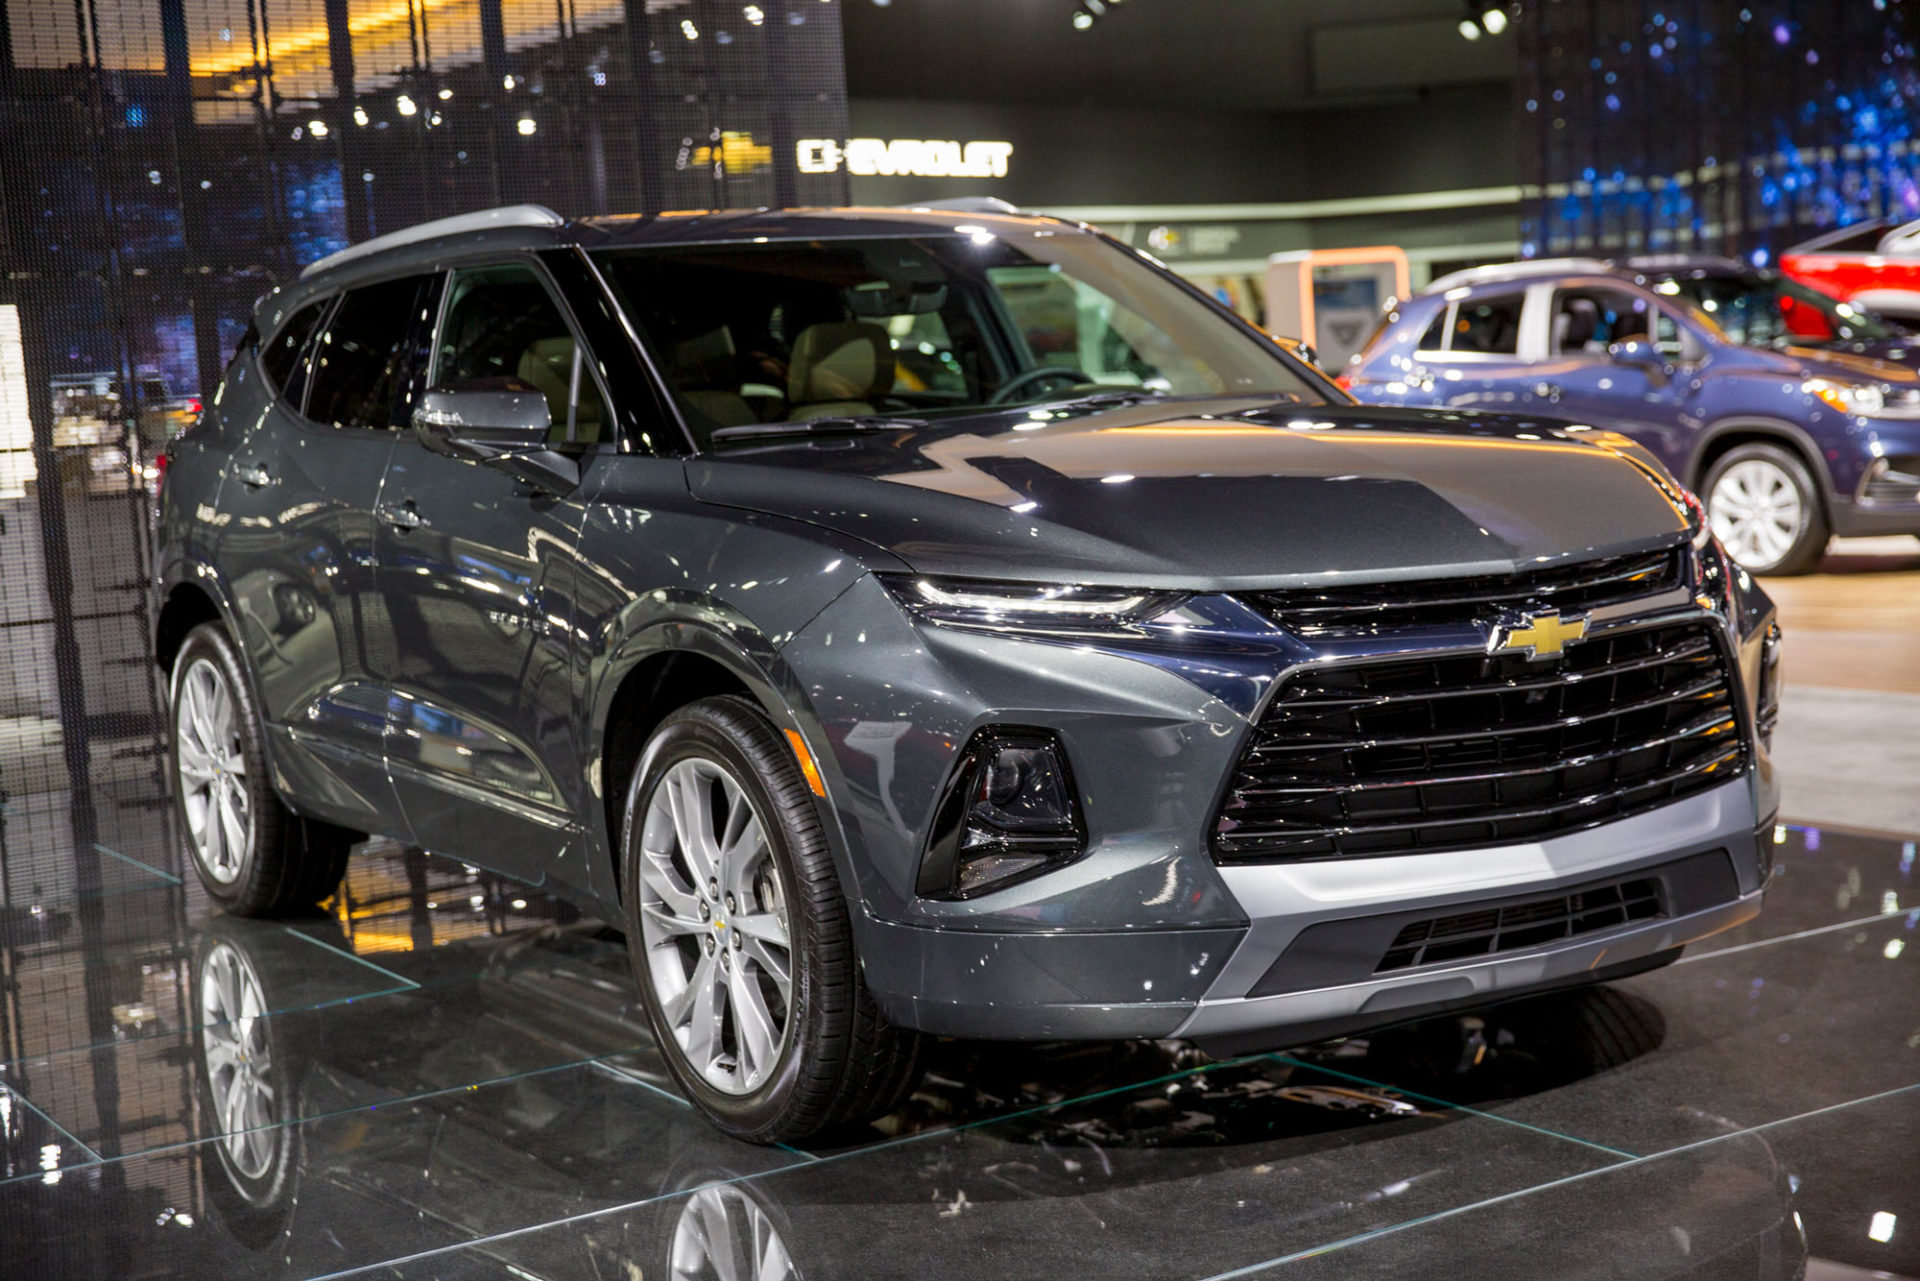 2018-South-Hall---Chevrolet-043